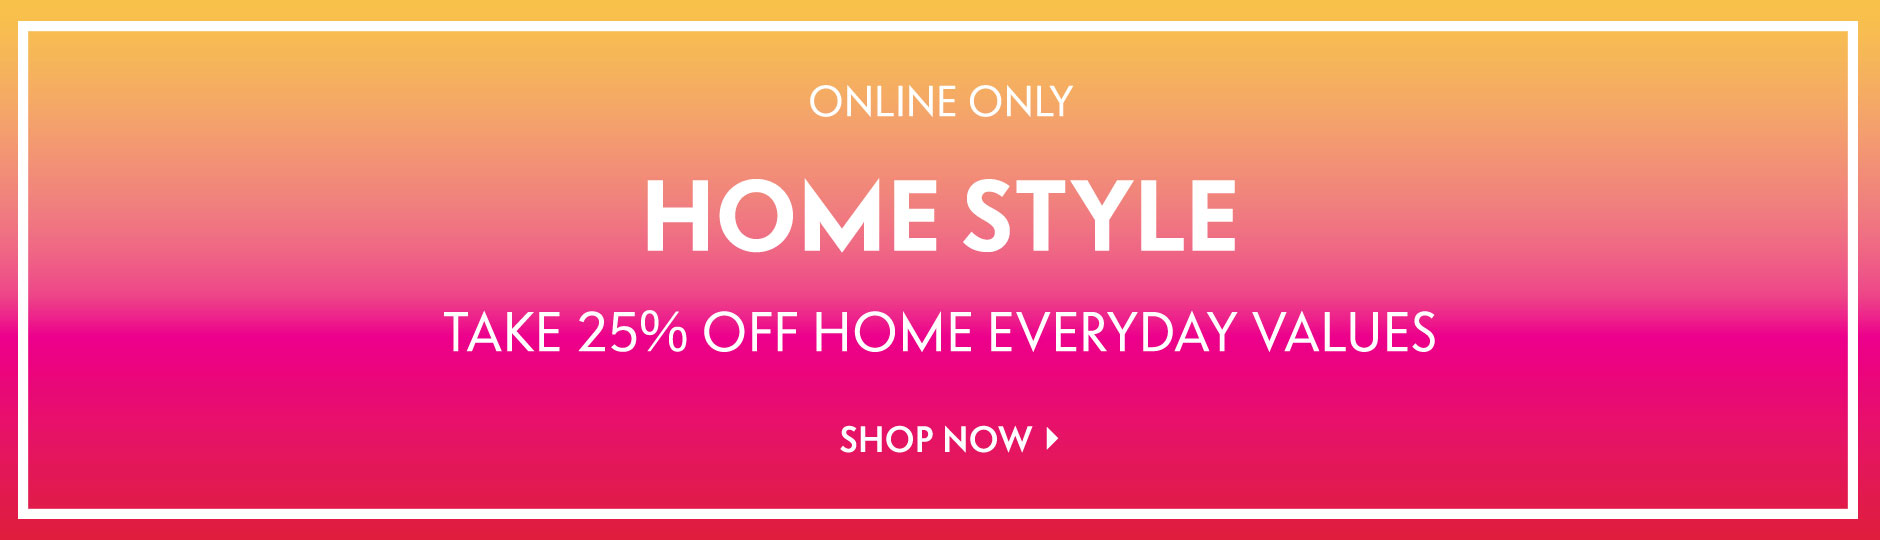 Online Only: Home Style - Take 25% off sale & everyday values